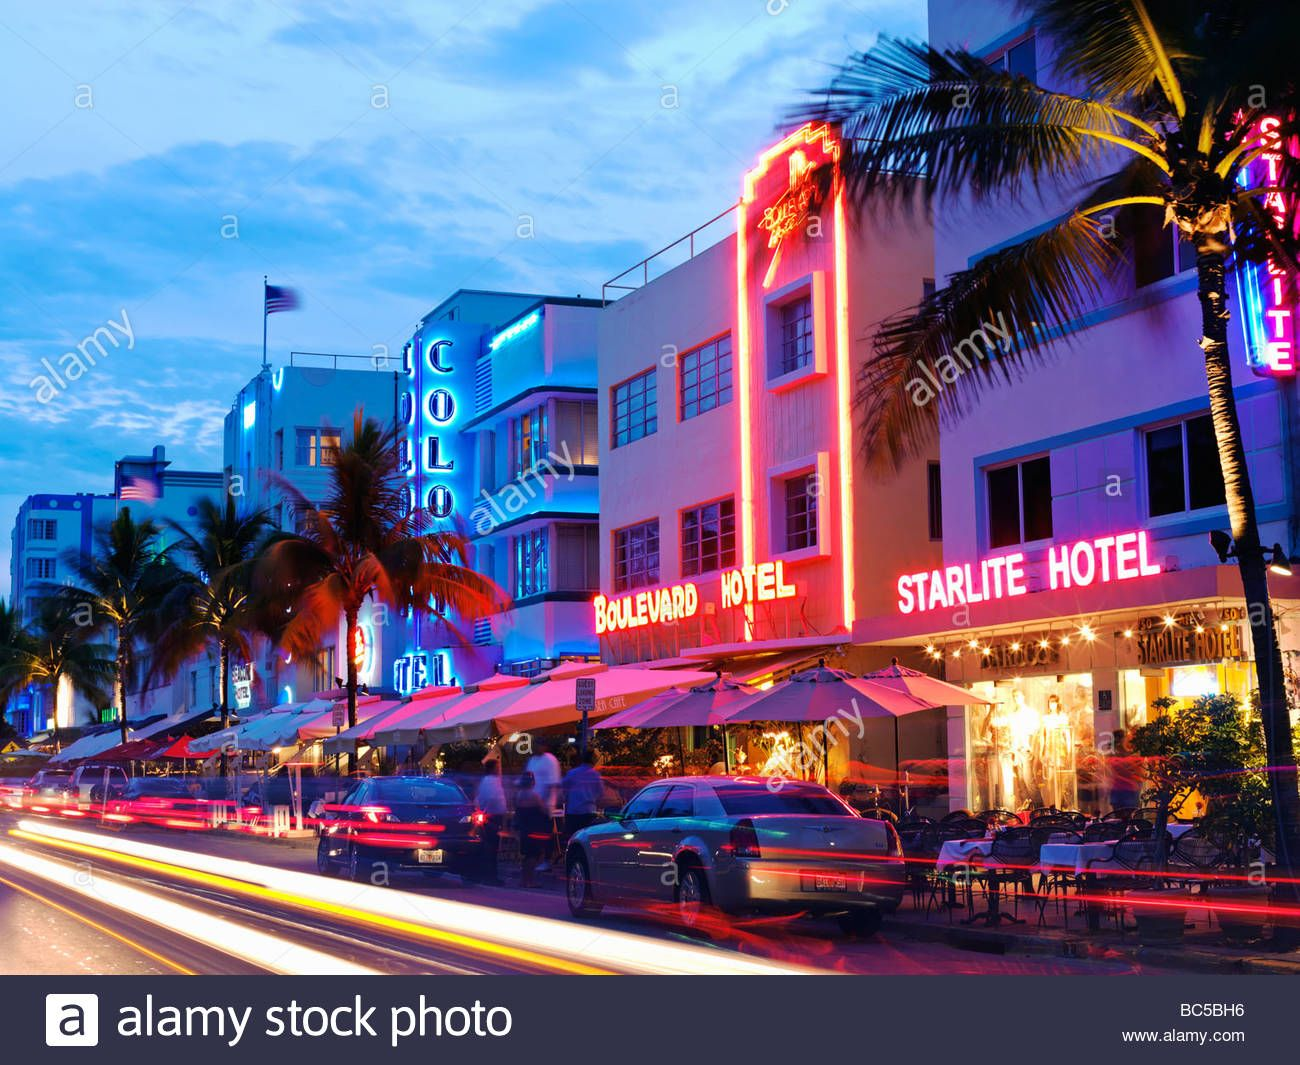 This Stock Image South Beach Miami Restaurants At Night On Ocean Drive Art Deco Hotels Bc5bh6 From Alamy S Library Of Millions High